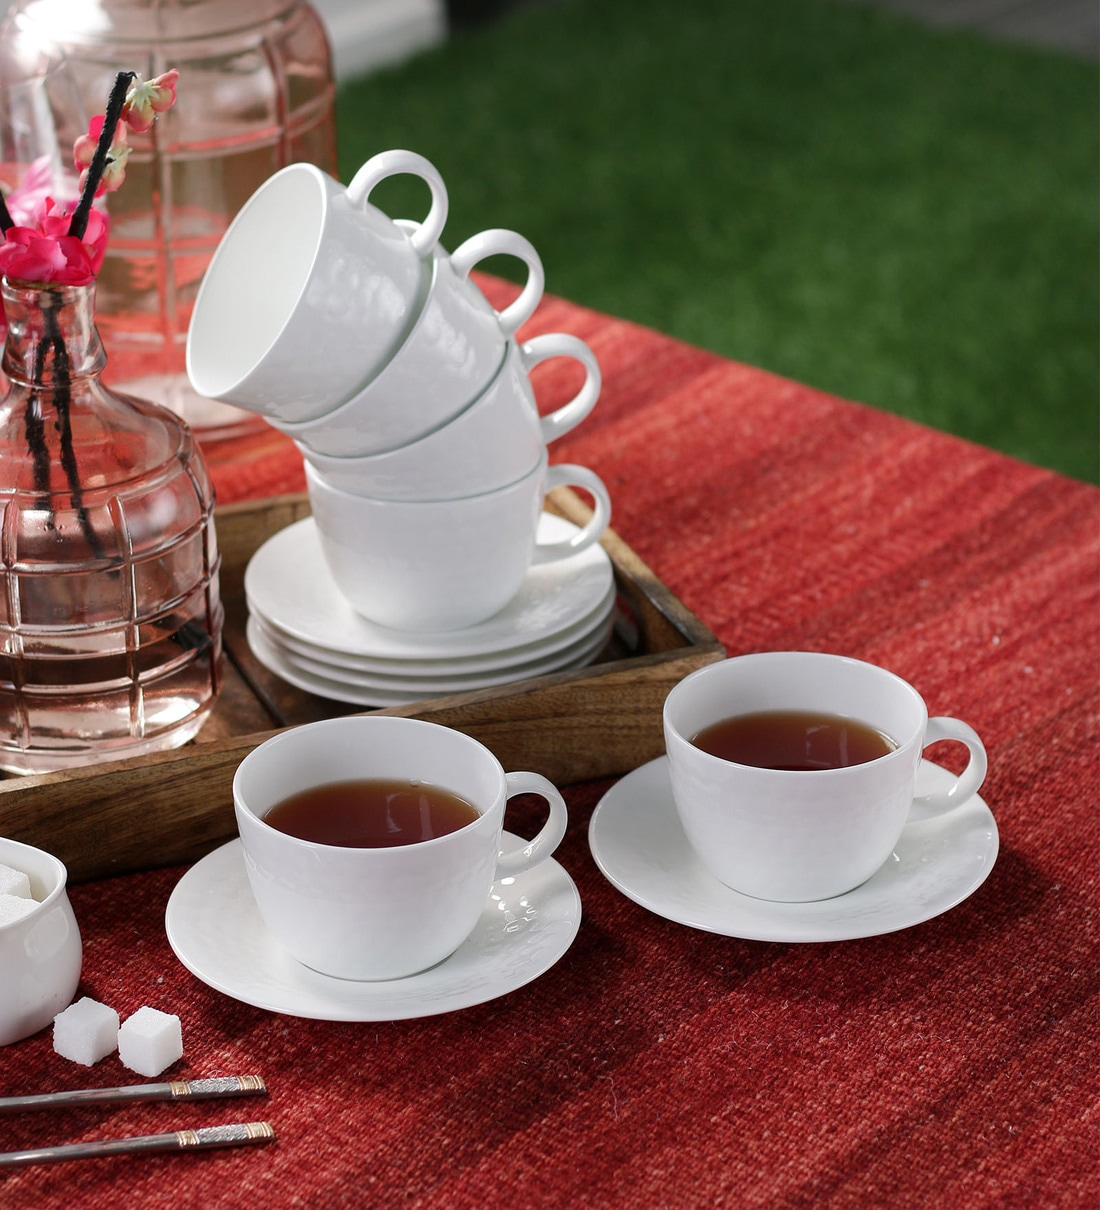 Buy Clay Craft Golf Plain Bone China 200 Ml Cup Saucer Set Of 6 Online Bone China Cups Saucers Bone China Cups Saucers Test Pepperfry Product